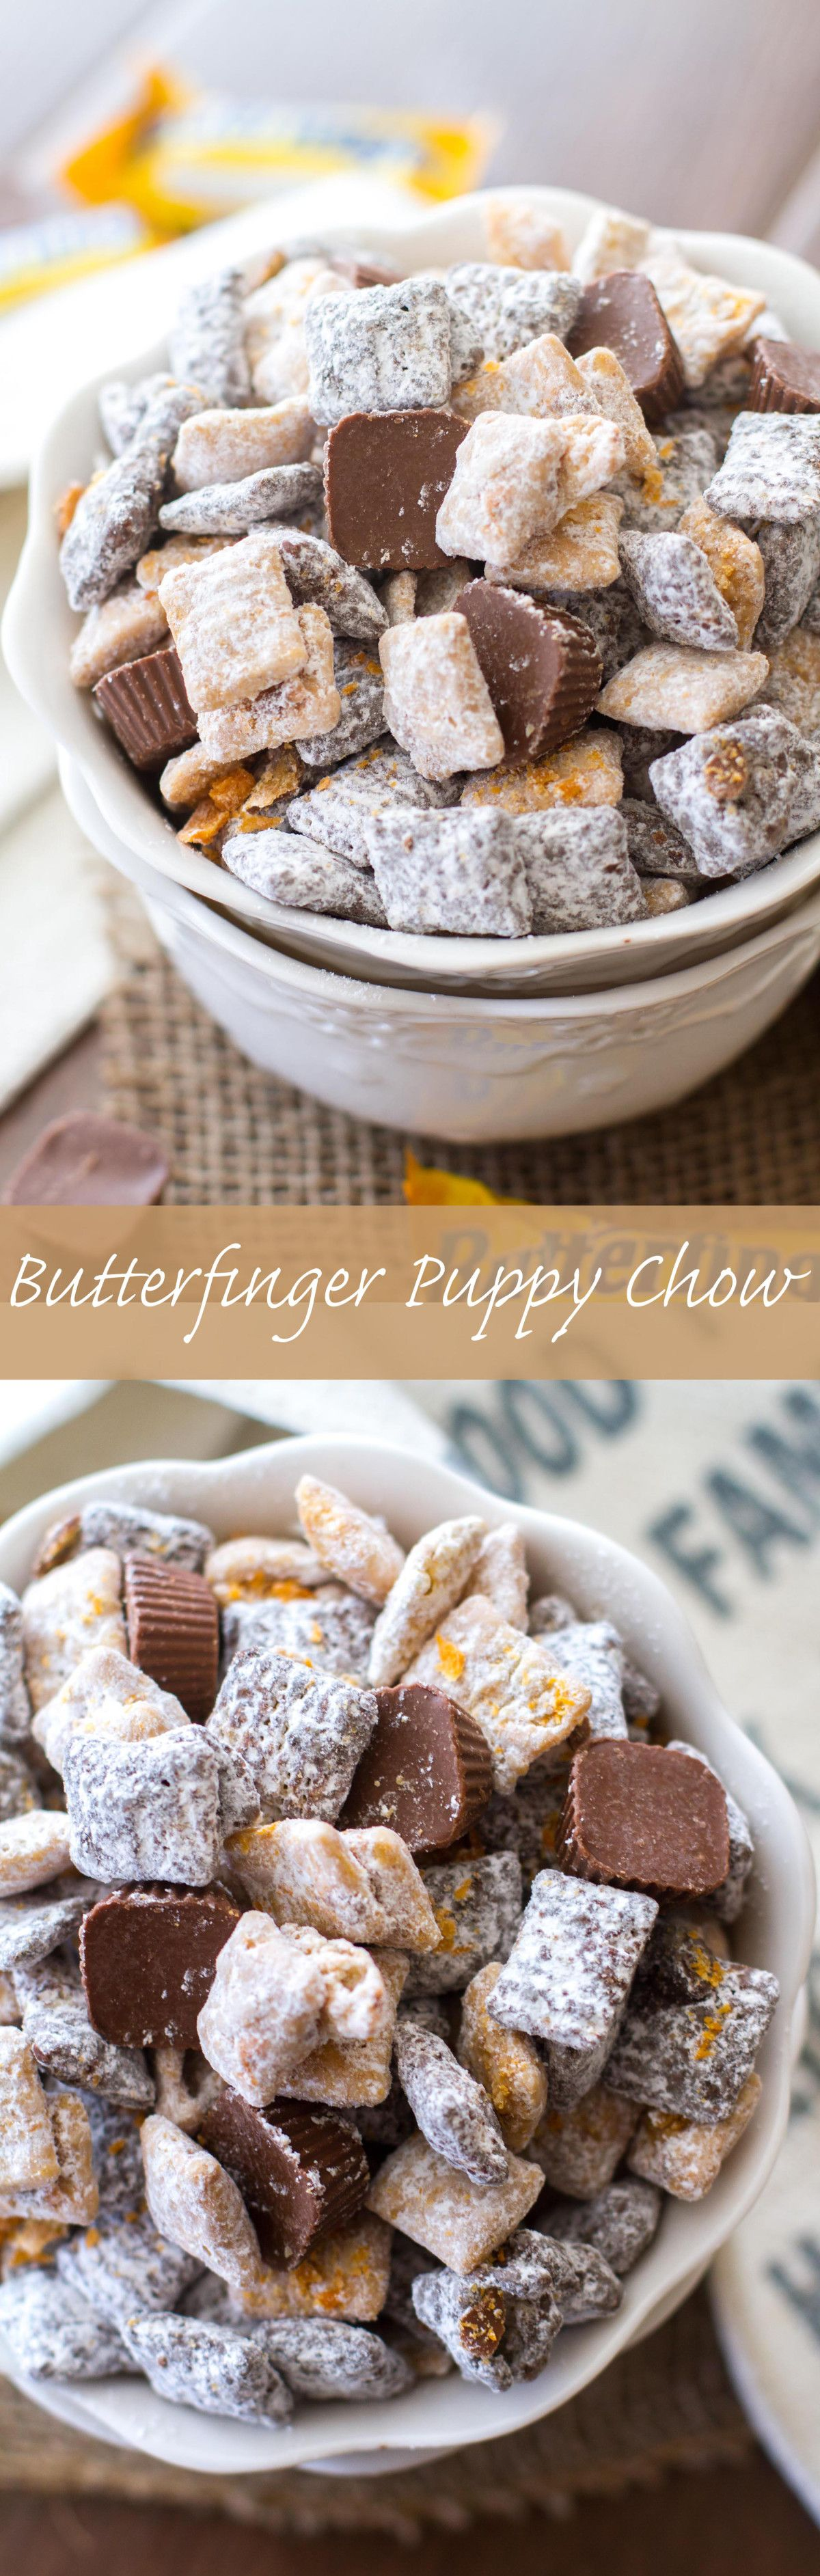 This easy puppy chow recipe is full of chocolate, peanut